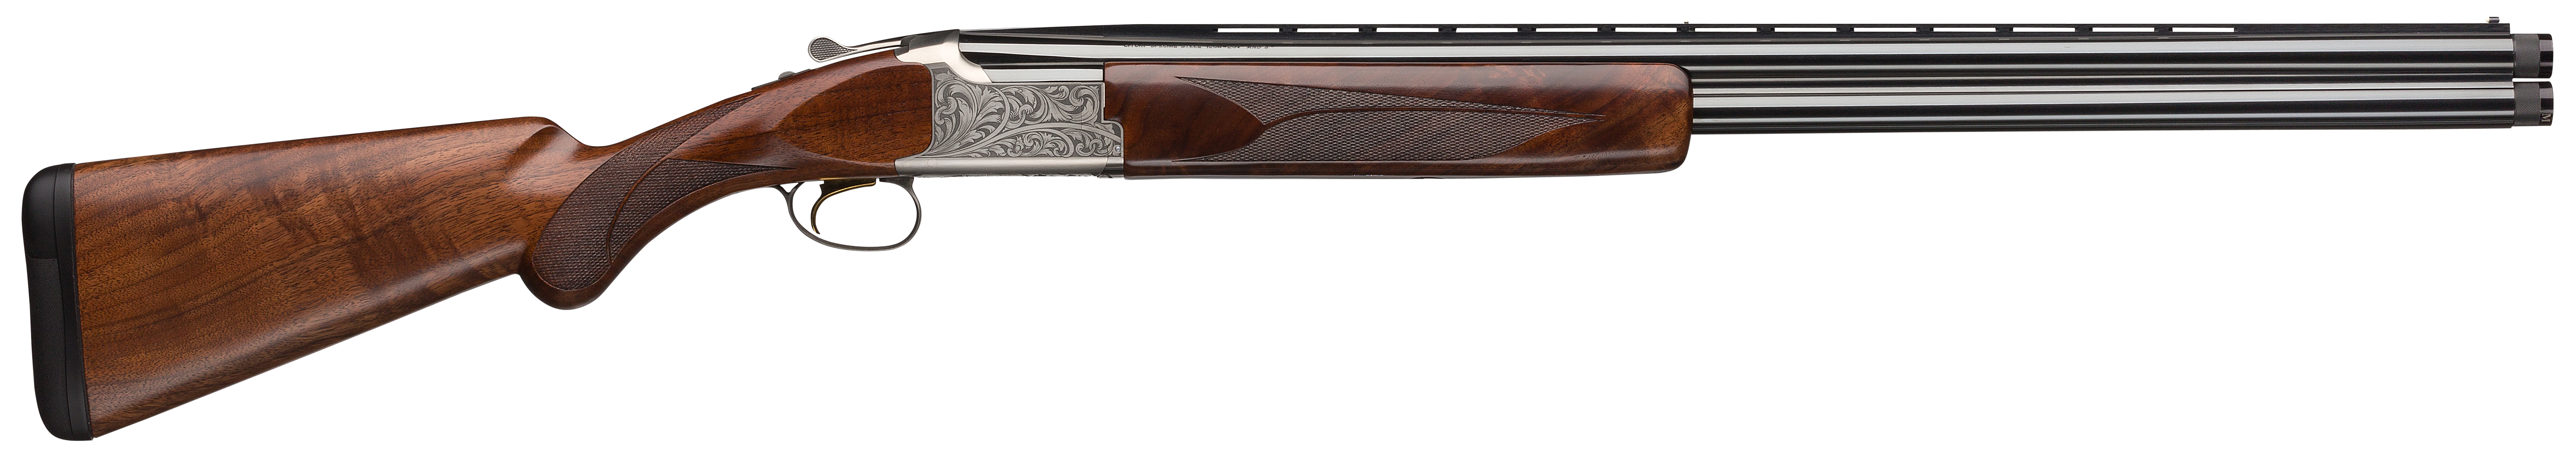 Browning Citori White Lightning Over/Under Shotgun 3'' 12 Gauge 28'' Silver Nitride Steel/Blued Barrel - Grade III Gloss/Grade IV Walnut